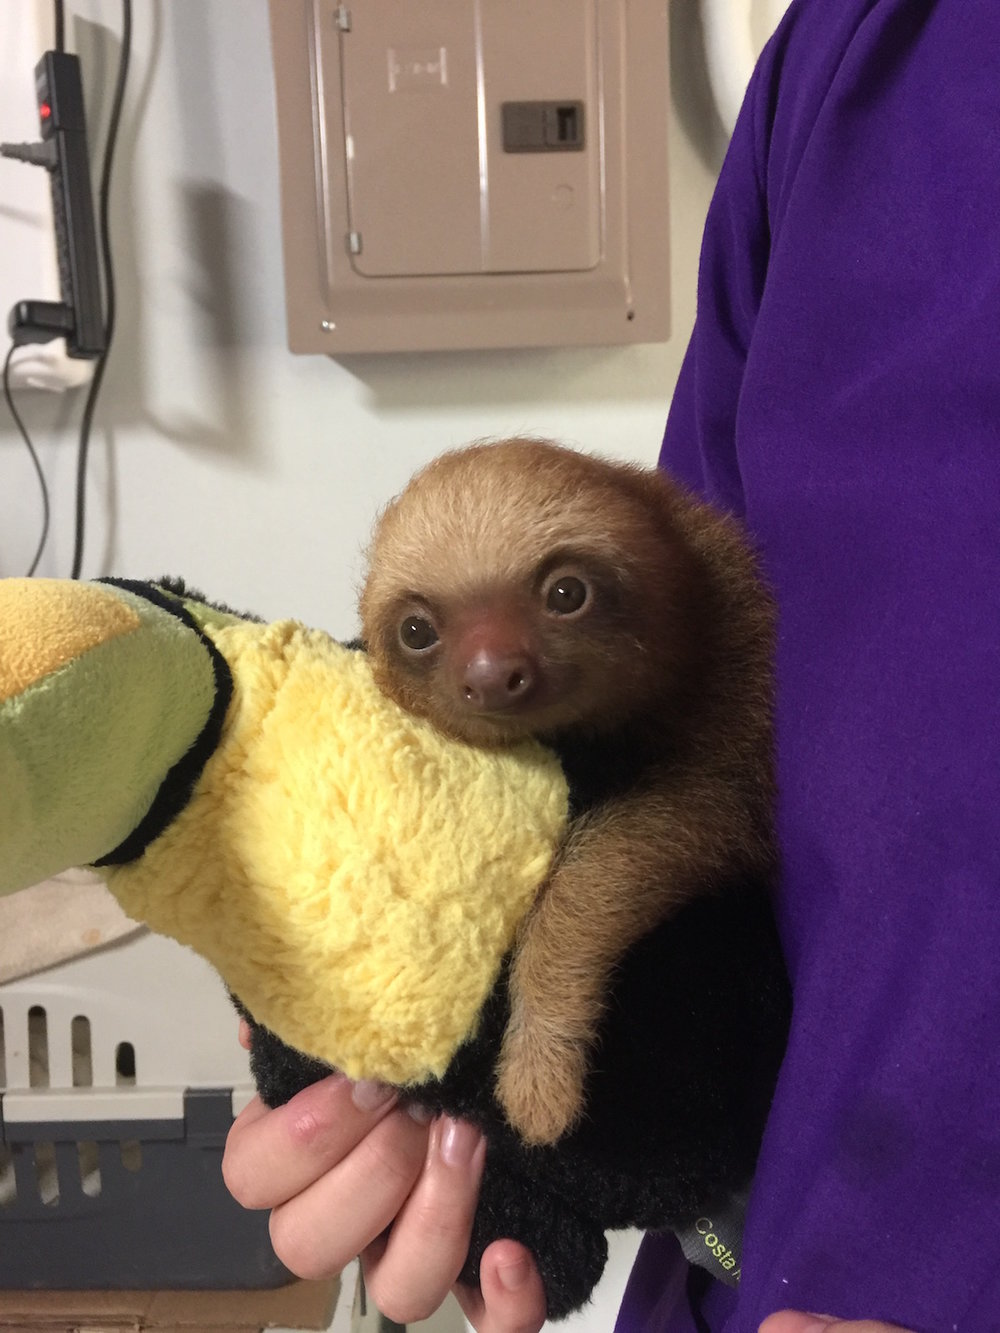 Vet holding a baby sloth